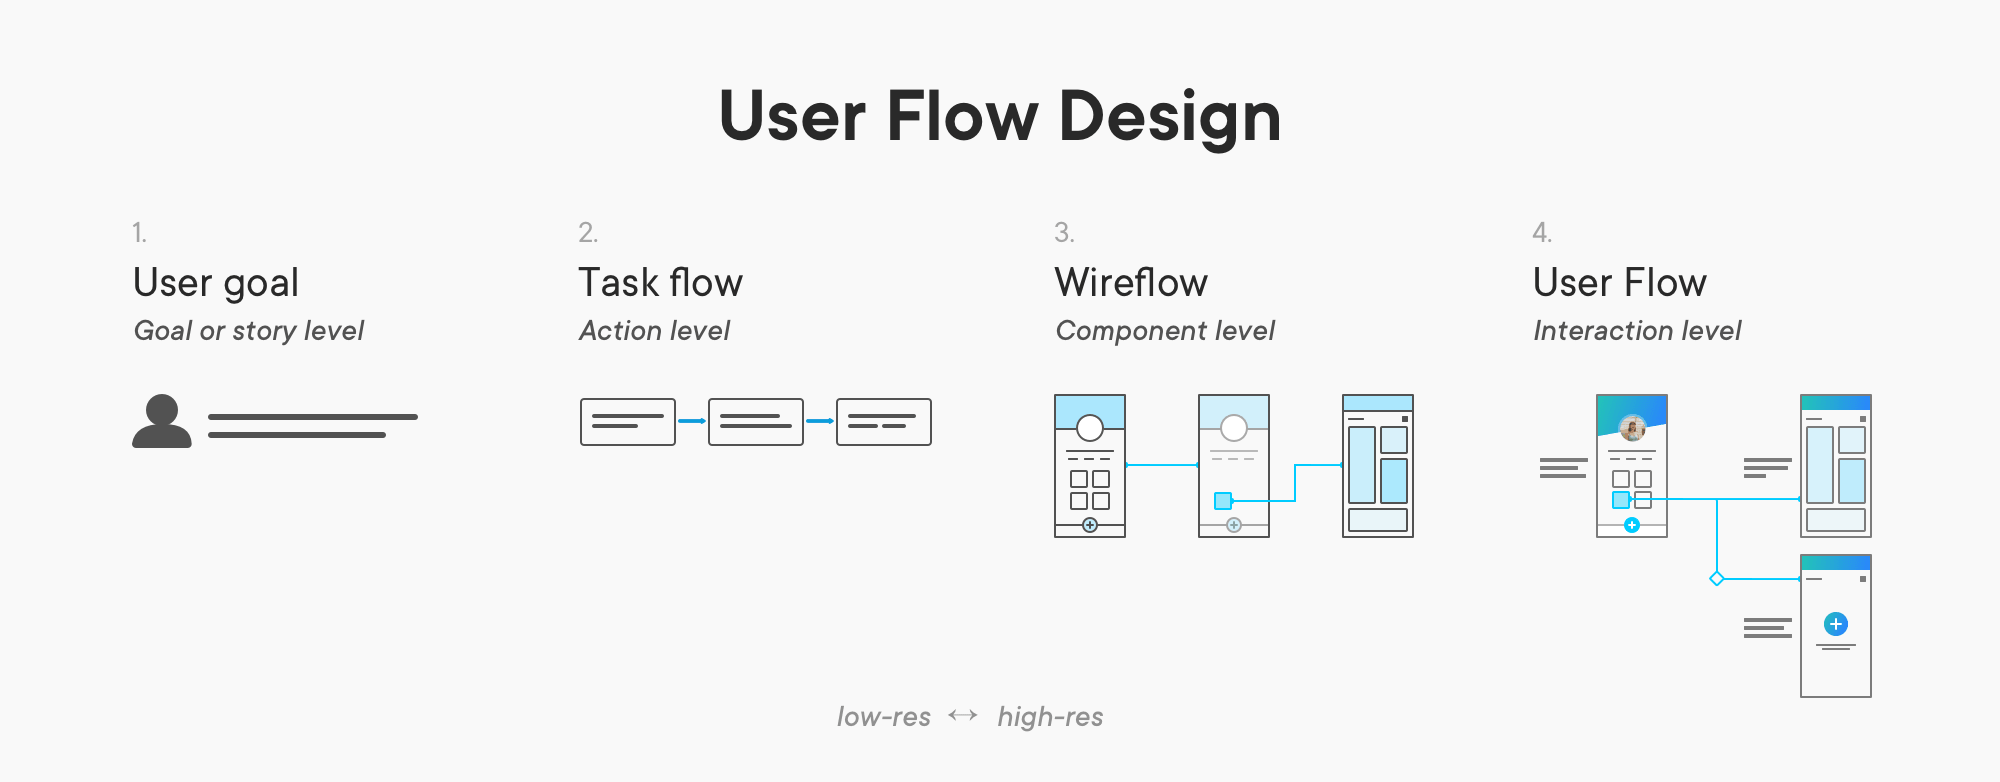 User flows at different stages of the design process